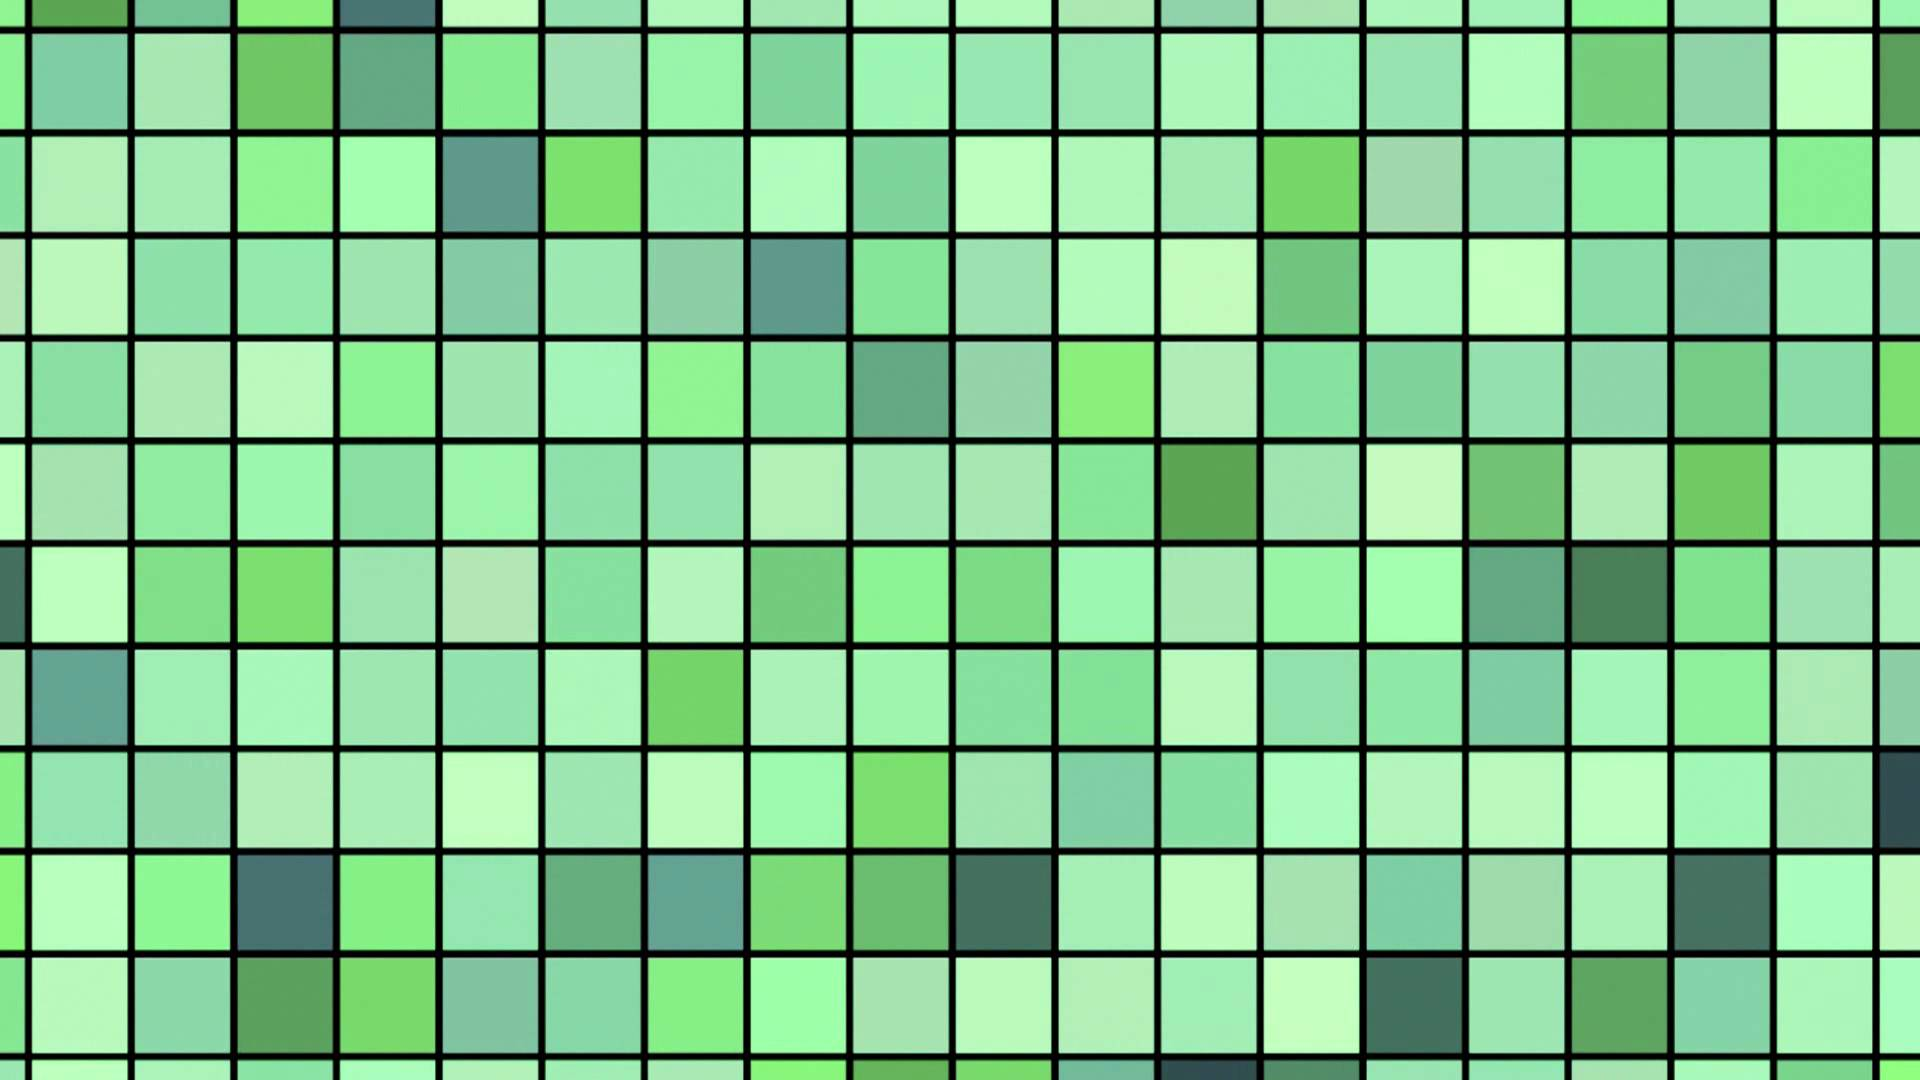 Party squares dance floor   HD animated background 09 1920x1080